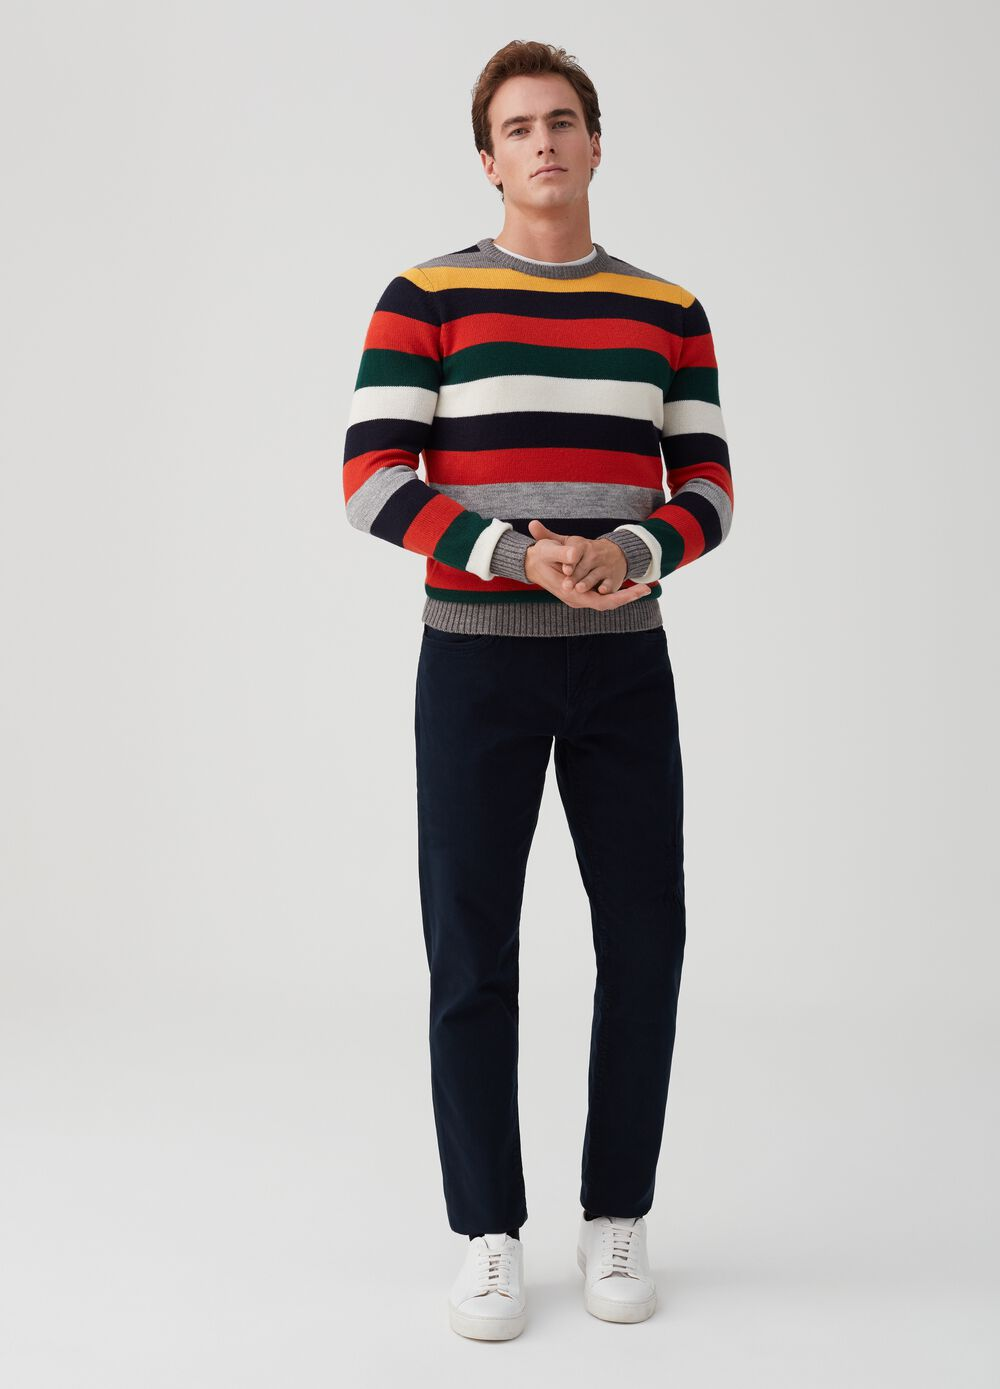 Wool pullover with striped pattern